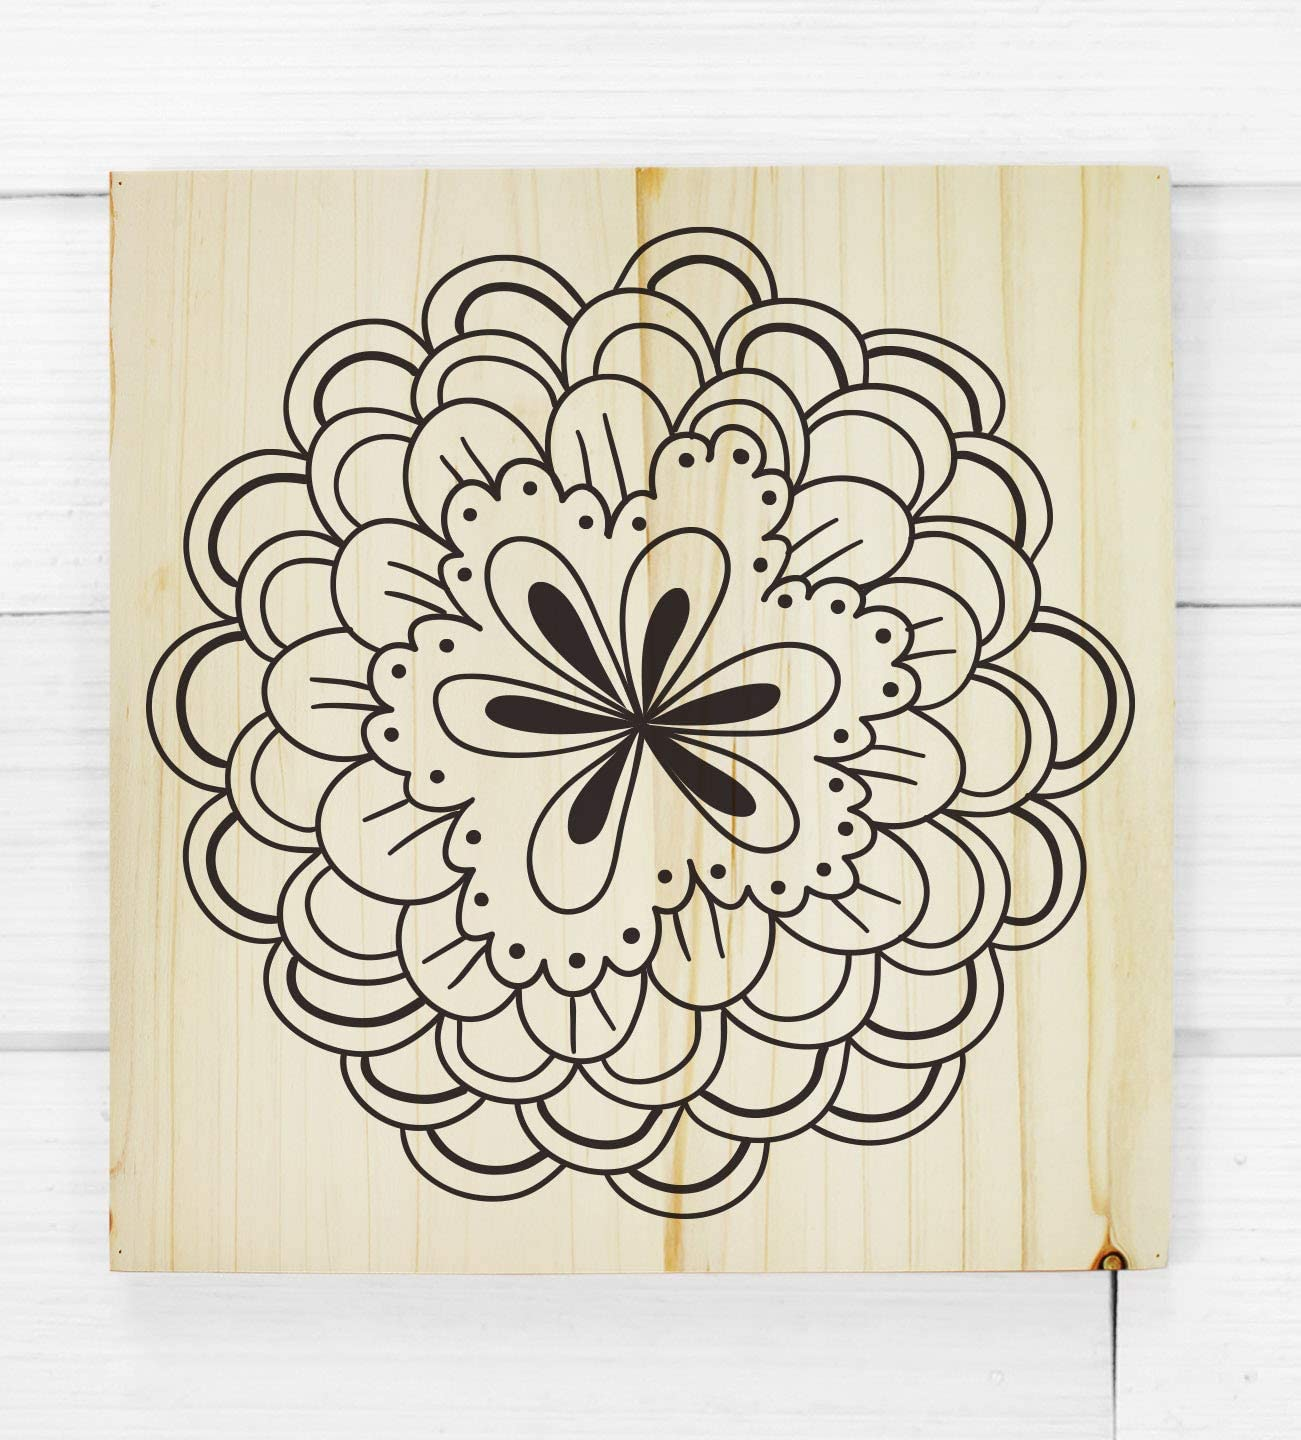 Darware Blank Wood Plaques 2-Pack, Unfinished Natural Fir Wooden Sign for DIY Crafts 12x12 Inch